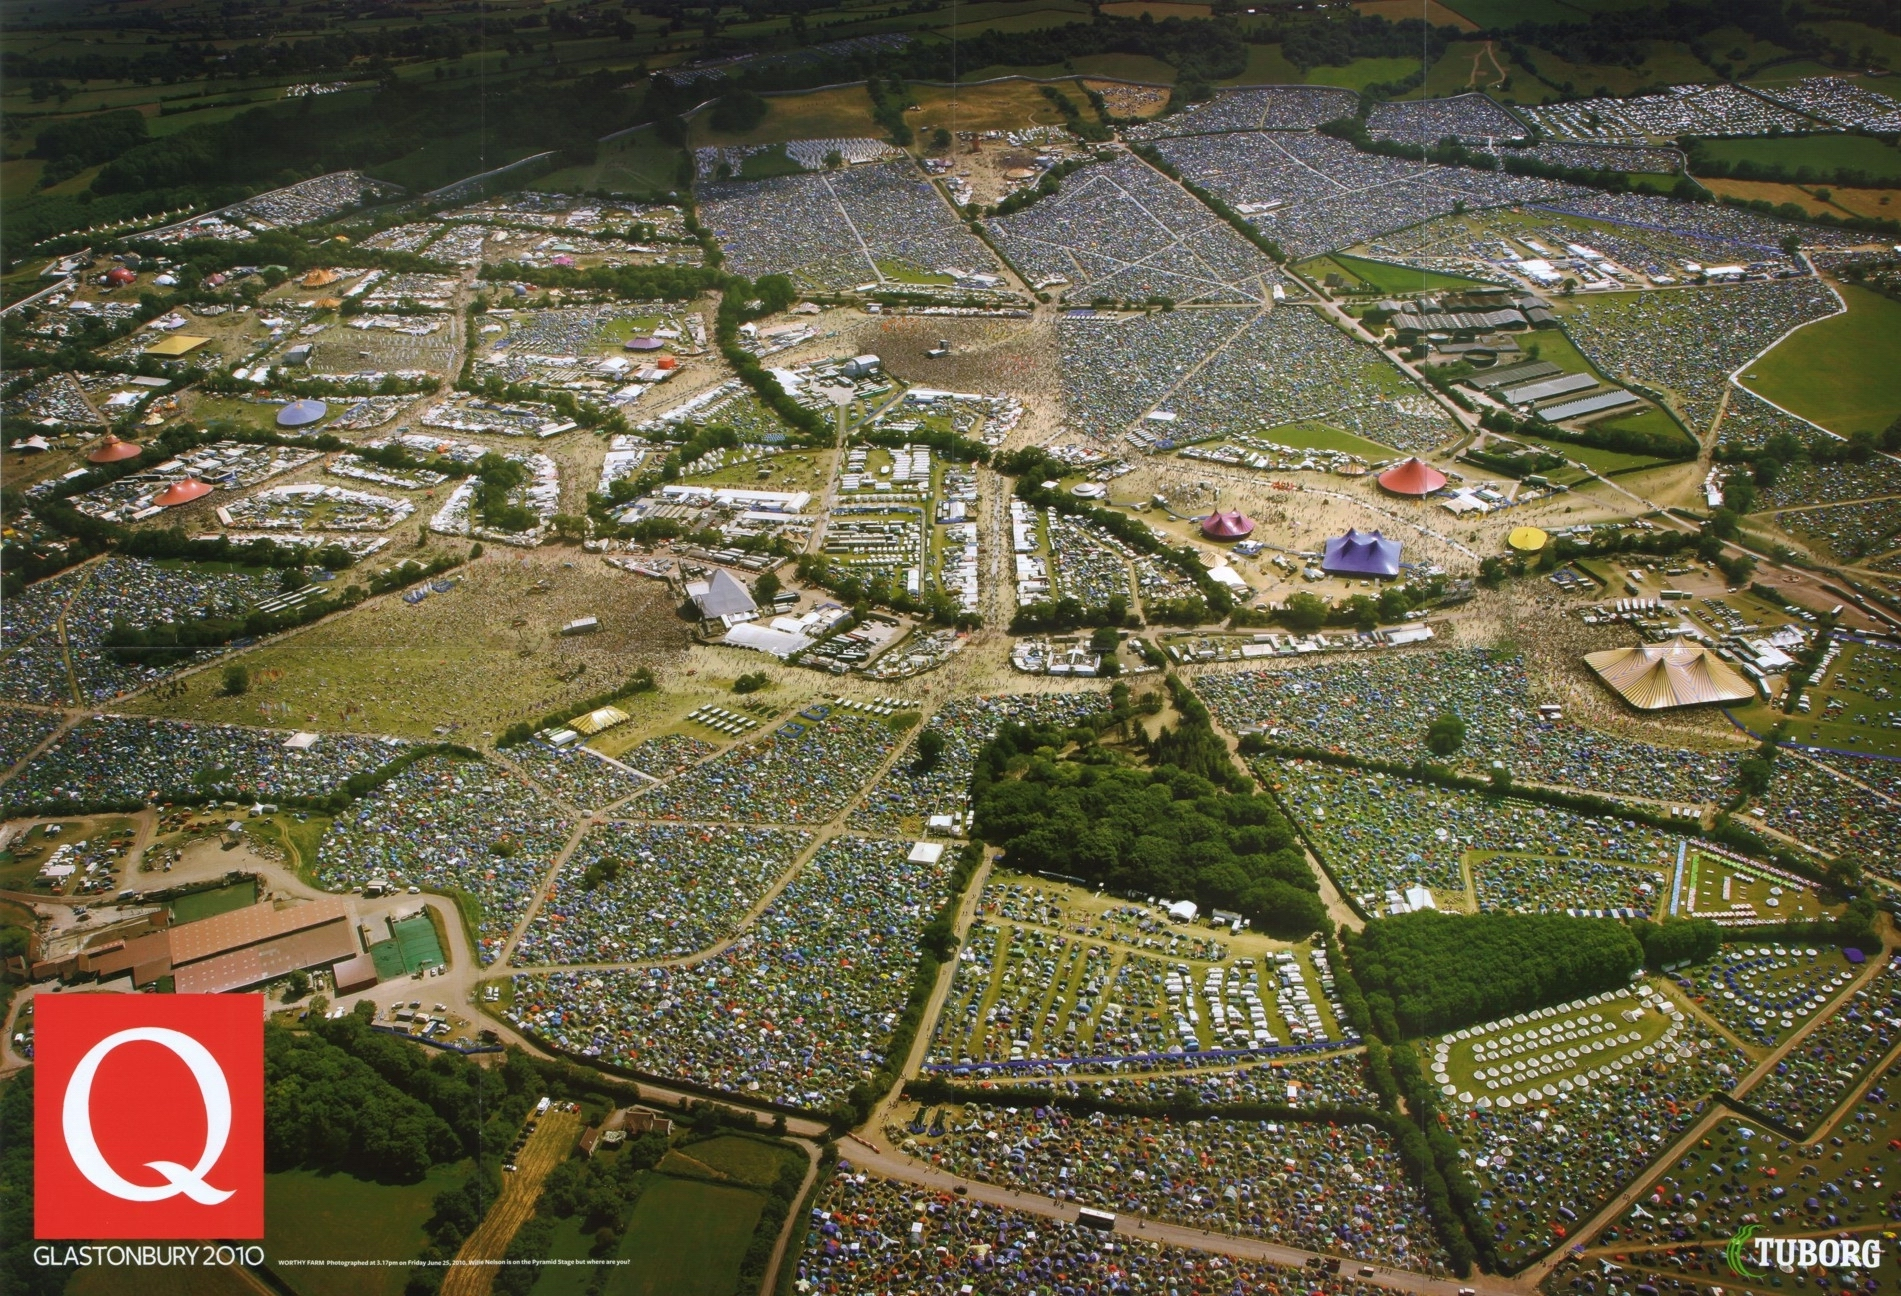 festival republic and glastonbury festival As this year's glastonbury festival gets into groove, james hall looks at the  difficulties  festival republic also owns 40pc of glastonbury.